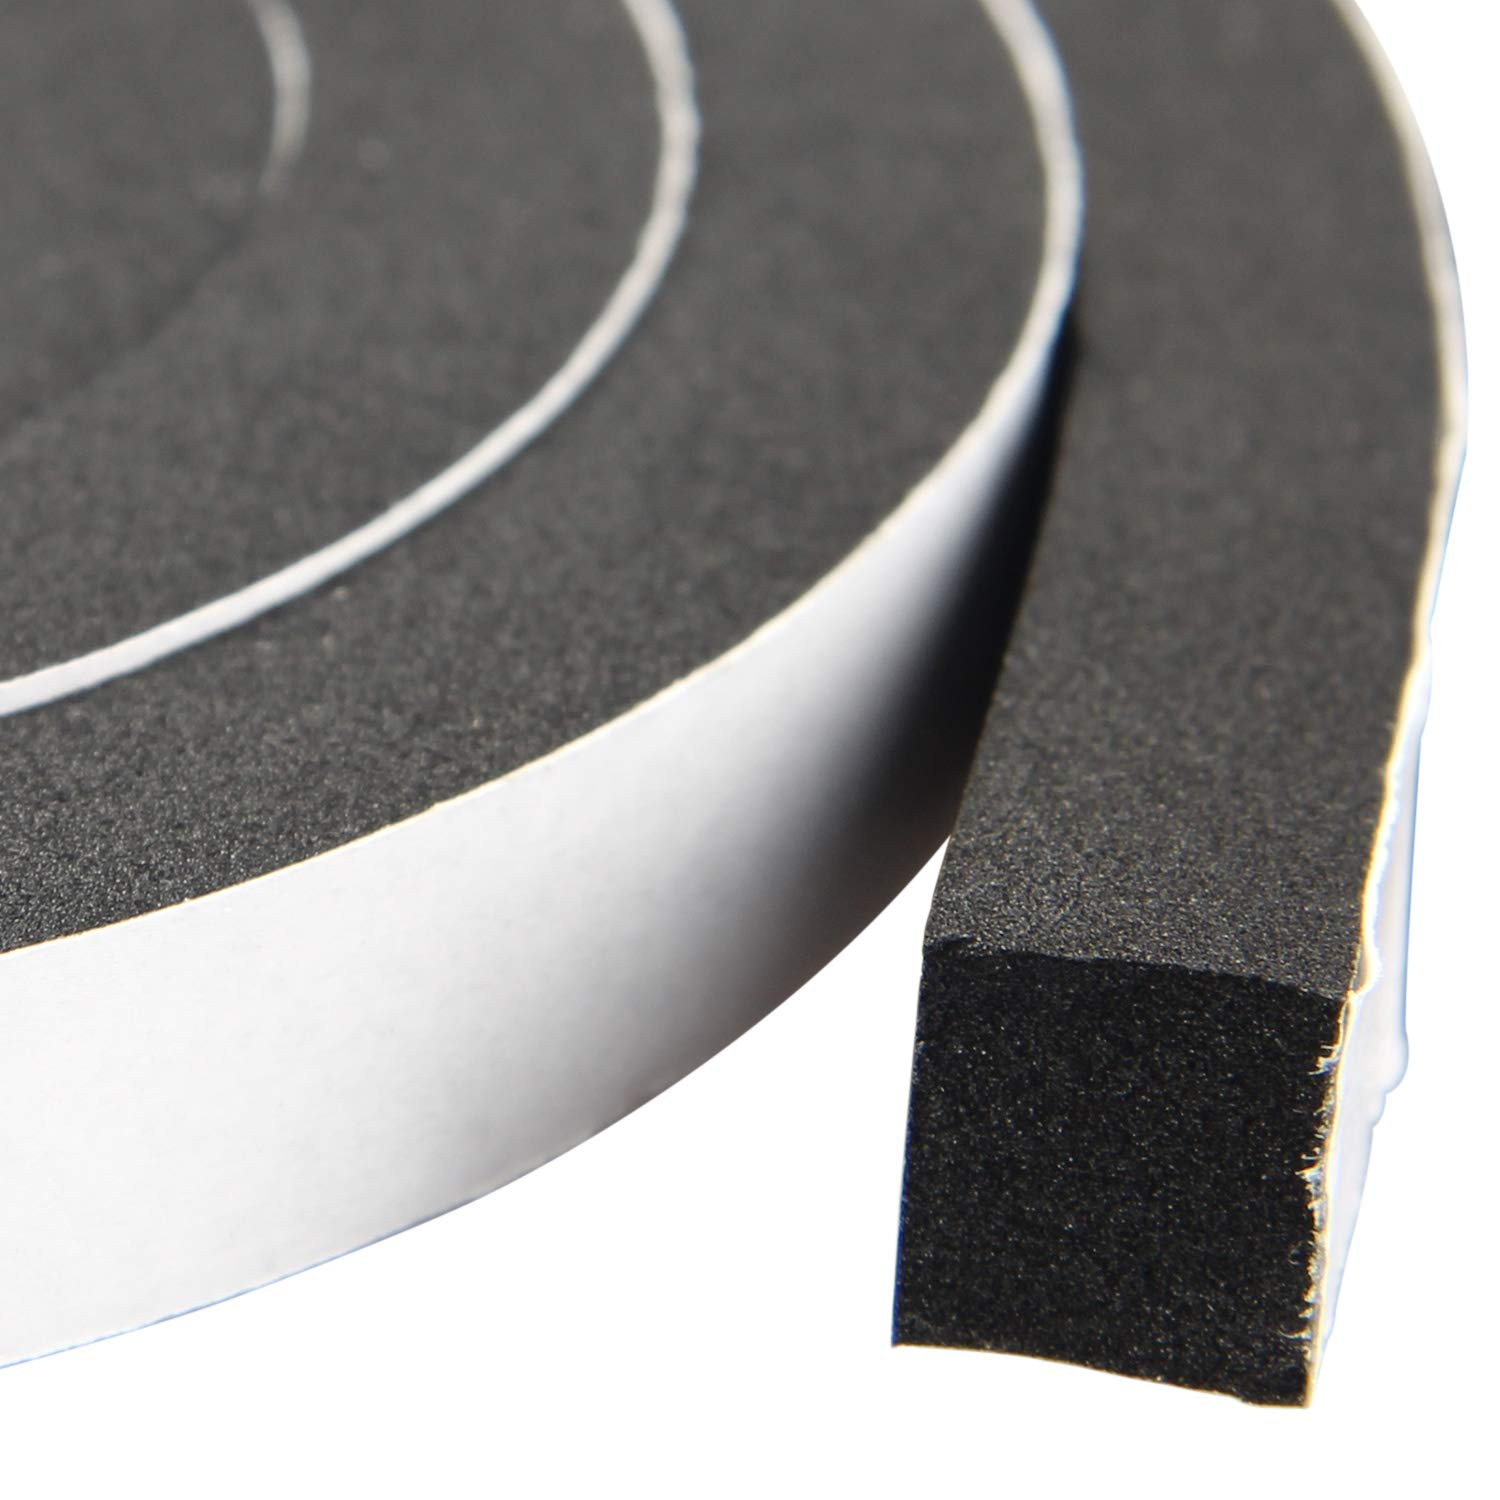 Total 50 Feet Long 3 Strips of 16.5 Ft Long Each Foam Tape 1//4 Inch Wide X 1//8 Inch Thick Weather Stripping for Doors and Window High Density Foam Seal Tape Sliding Door Weather Strip